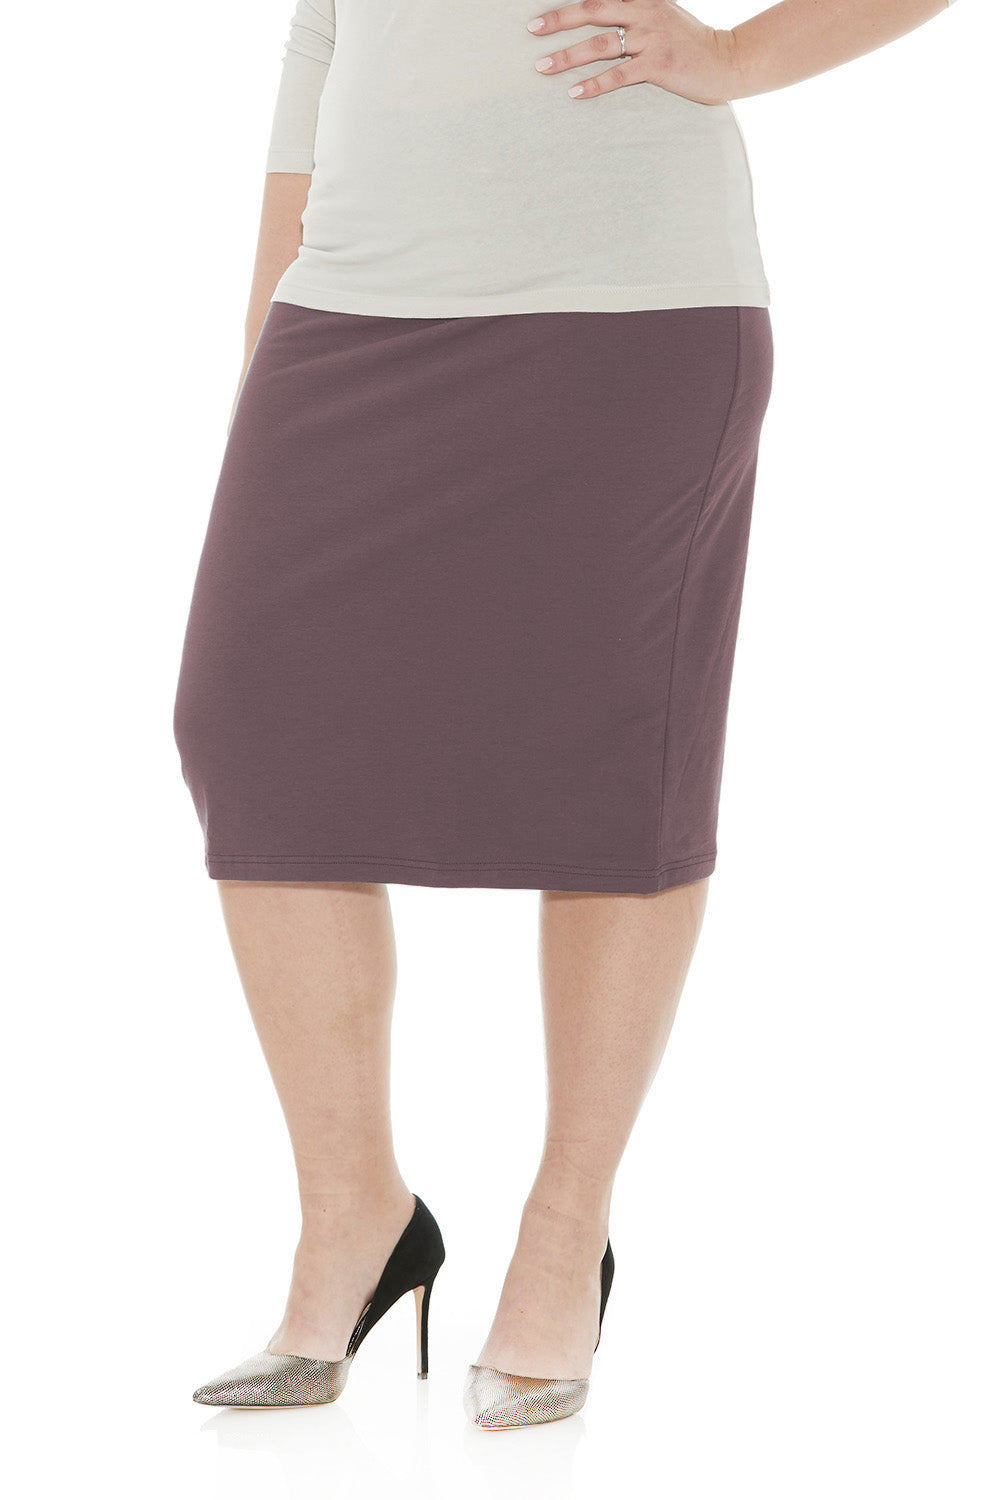 Esteez DALLAS Skirt - PLUS SIZE Cotton Spandex Stretchy Pencil skirt for WOMEN - CHARCOAL - CLEARANCE